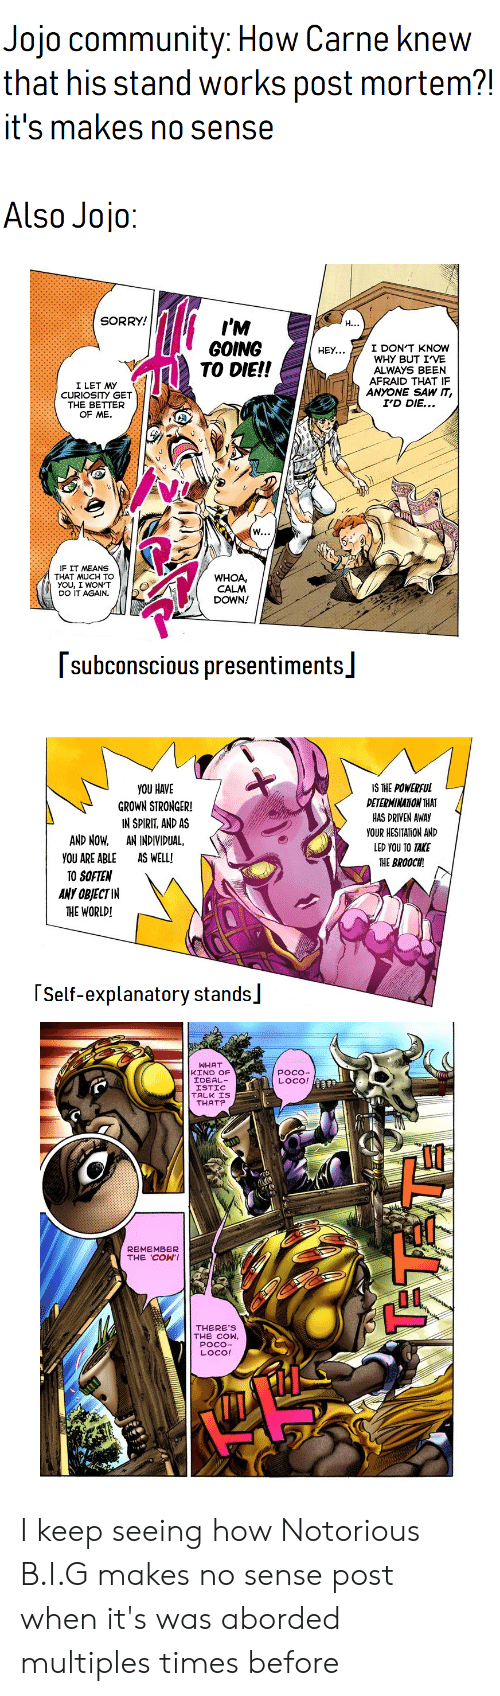 I Wont Do It Again: Jojo community: How Carne knew  that his stand works post mortem?!  it's makes no sense  Also Jojo:  SORRY!  I'M  GOING  TO DIE!!  H...  I DON'T KNOW  WHY BUT IVE  ALWAYS BEEN  AFRAID THAT IF  ANYONE SAW IT,  I'D DIE...  HEY...  I LET MY  CURIOSITY GET  THE BETTER  OF ME.  W...  IF IT MEANS  THAT MUCH TO  YOU, I WON'T  DO IT AGAIN  WHOA  CALM  DOWN!  subconscious presentiments  YOU HAVE  IS THE POWERFUL  DETERMINATION THAT  GROWN STRONGER!  HAS DRIVEN AWAY  YOUR HESITATION AND  IN SPIRIT, AND AS  AN INDIVIDUAL  AND NOW  LED YOU TO TAKE  AS WELL!  YOU ARE ABLE  THE BROOCH  TO SOFTEN  ANY OBJECT IN  THE WORLD!  Self-explanatory stands  WHAT  KIND OF  IDEAL  ISTIC  TALK IS  THAT?  POCO-  LOCO!  REMEMBER  THE COW'!  THERE'S  THE COW,  POCO-  LOCO! I keep seeing how Notorious B.I.G makes no sense post when it's was aborded multiples times before